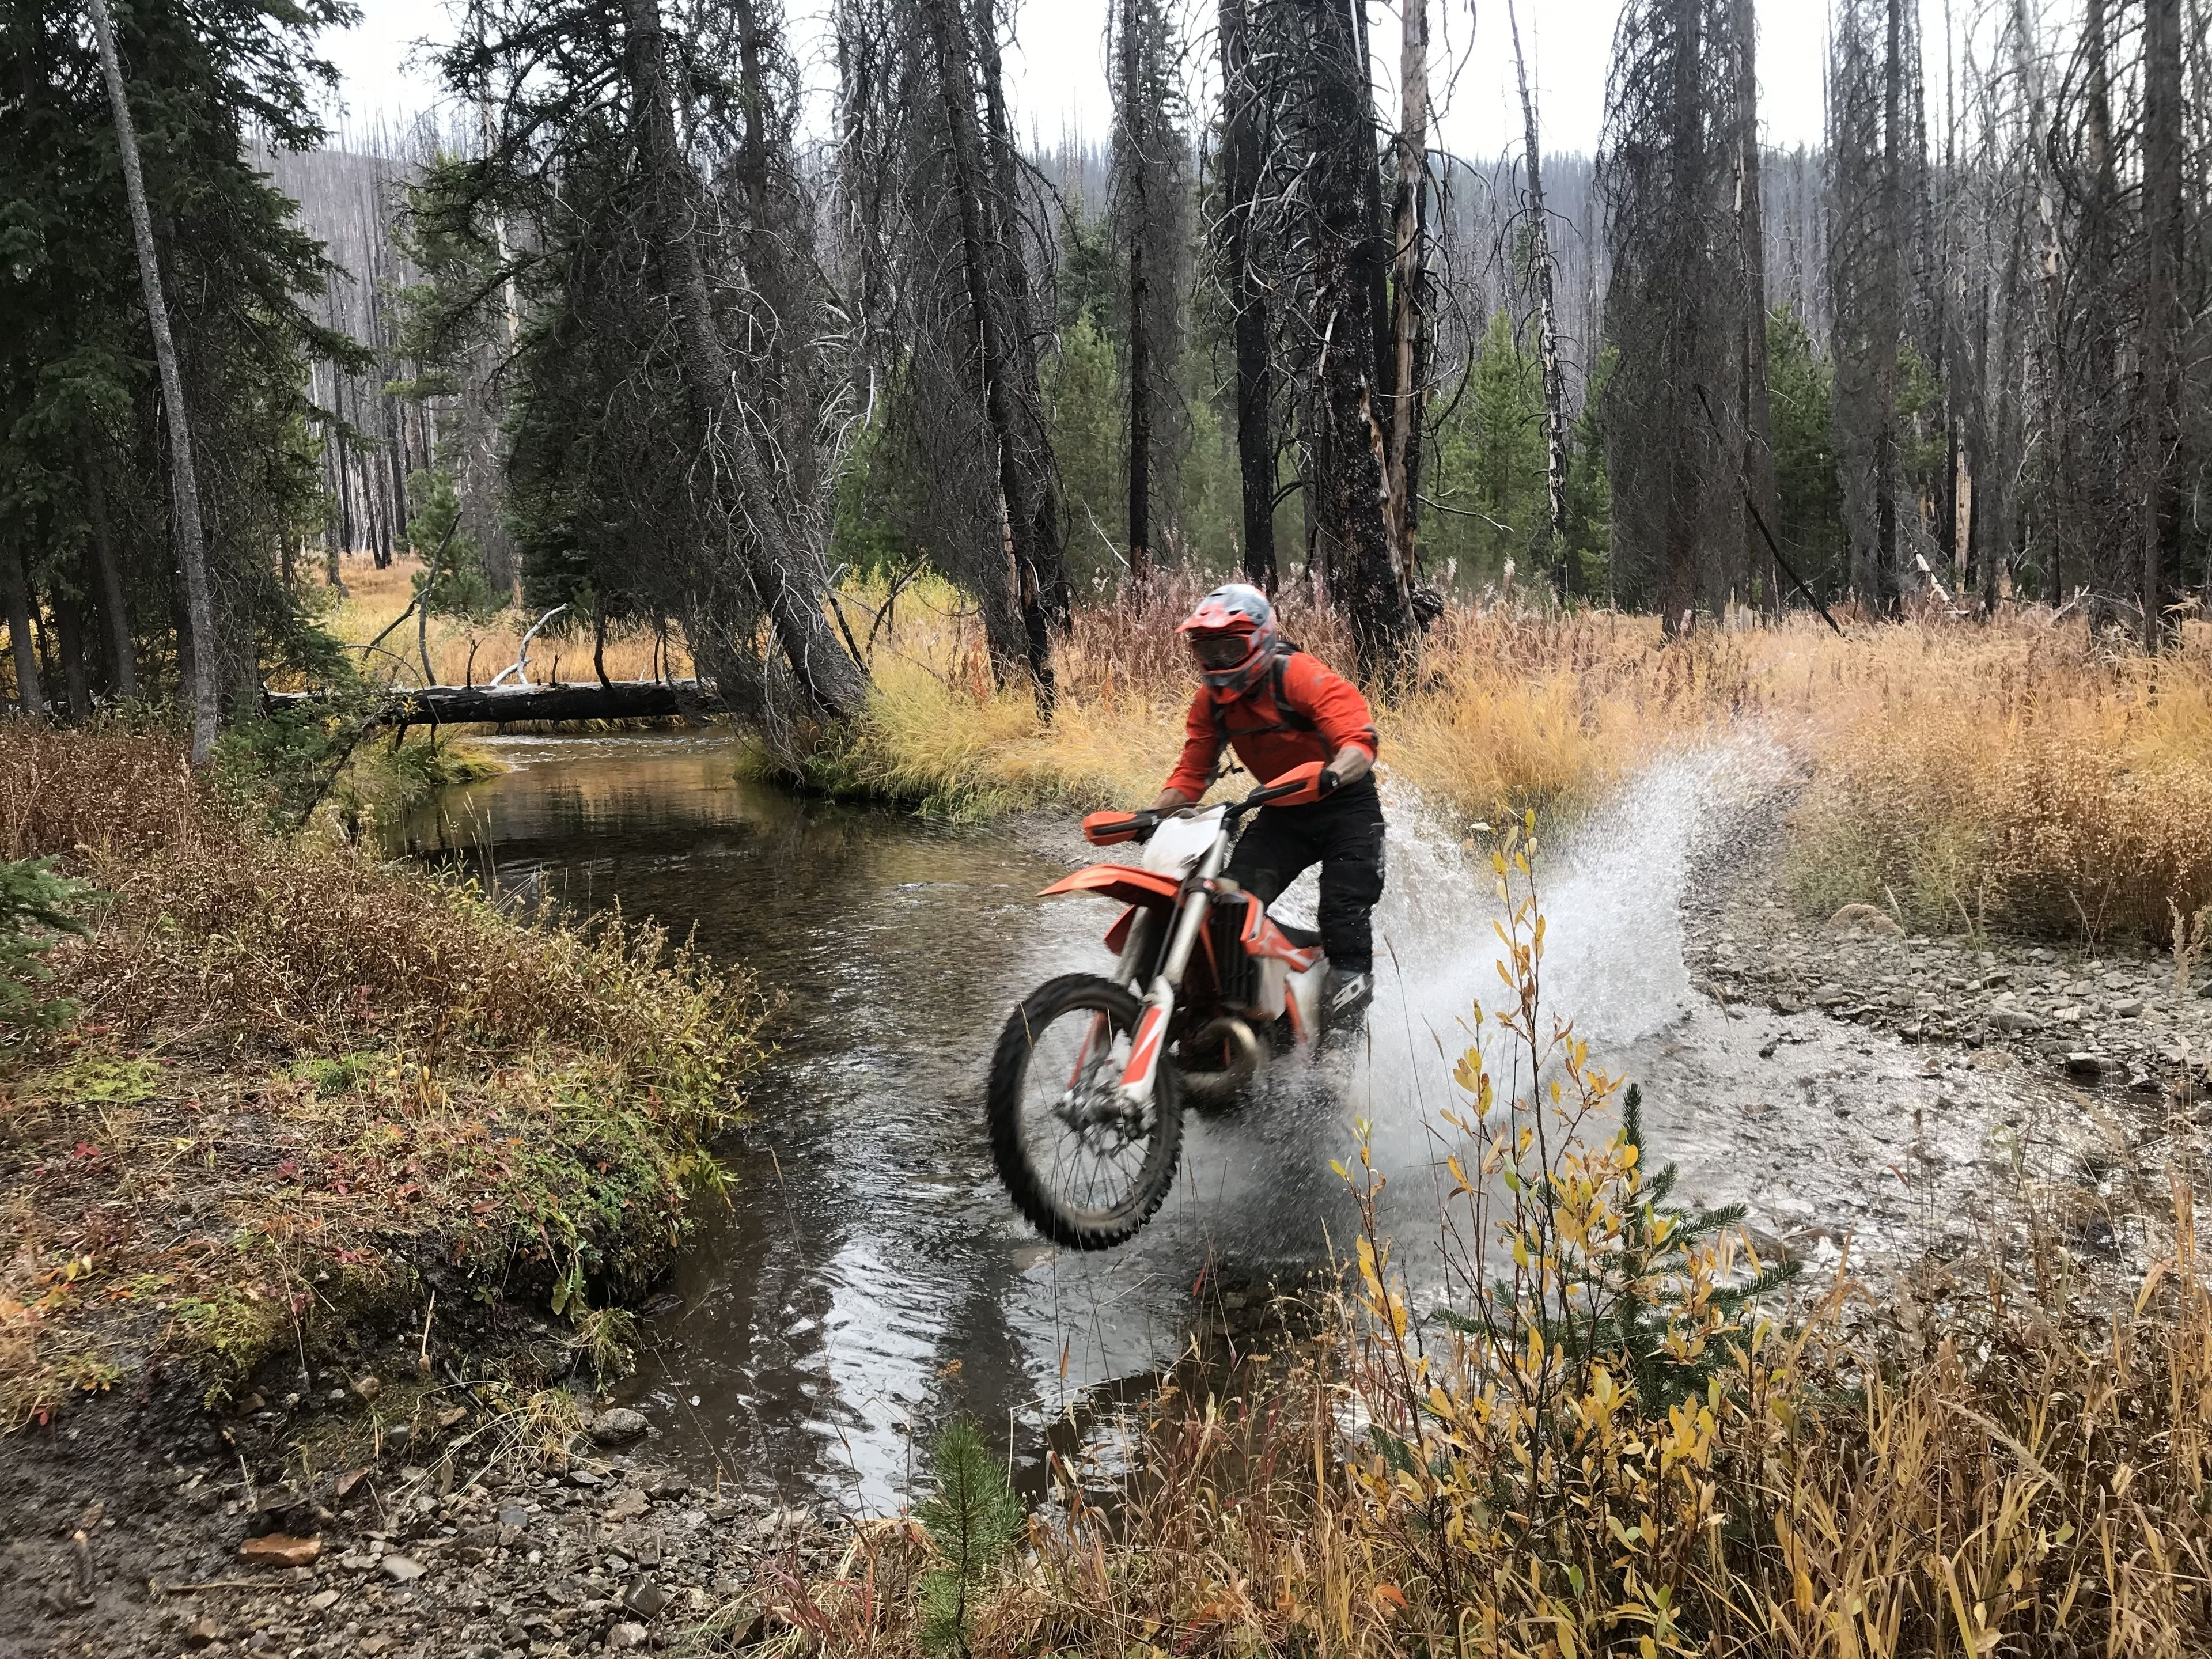 Single Track Motorcycle Tour in the Wasatch mountains